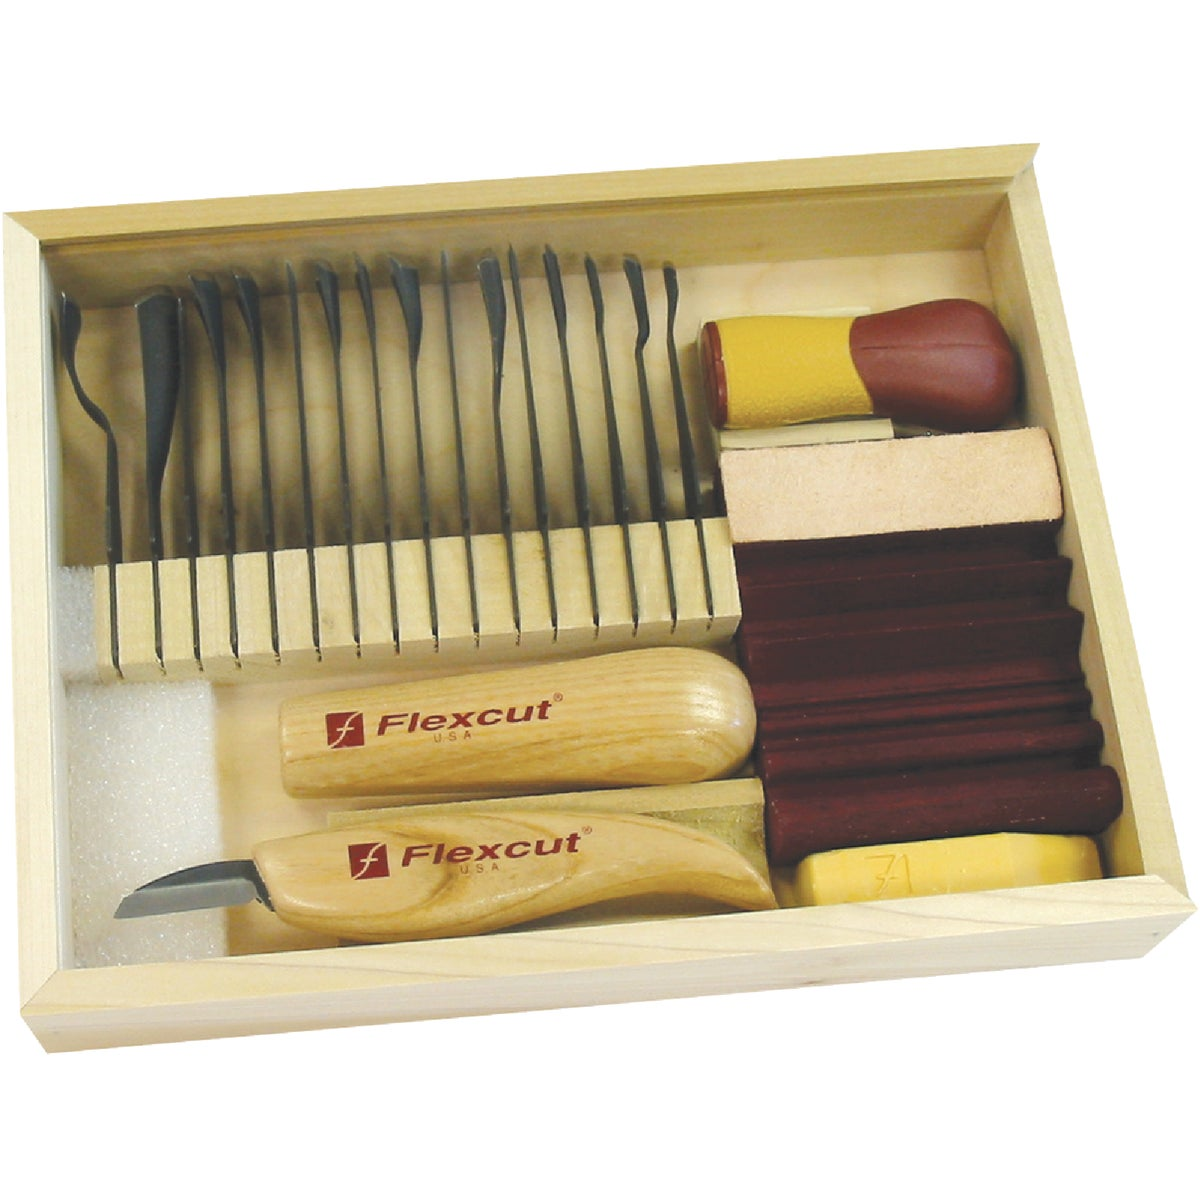 DLX STARTER CARVING SET - SK108 by Flexcut Tool Co